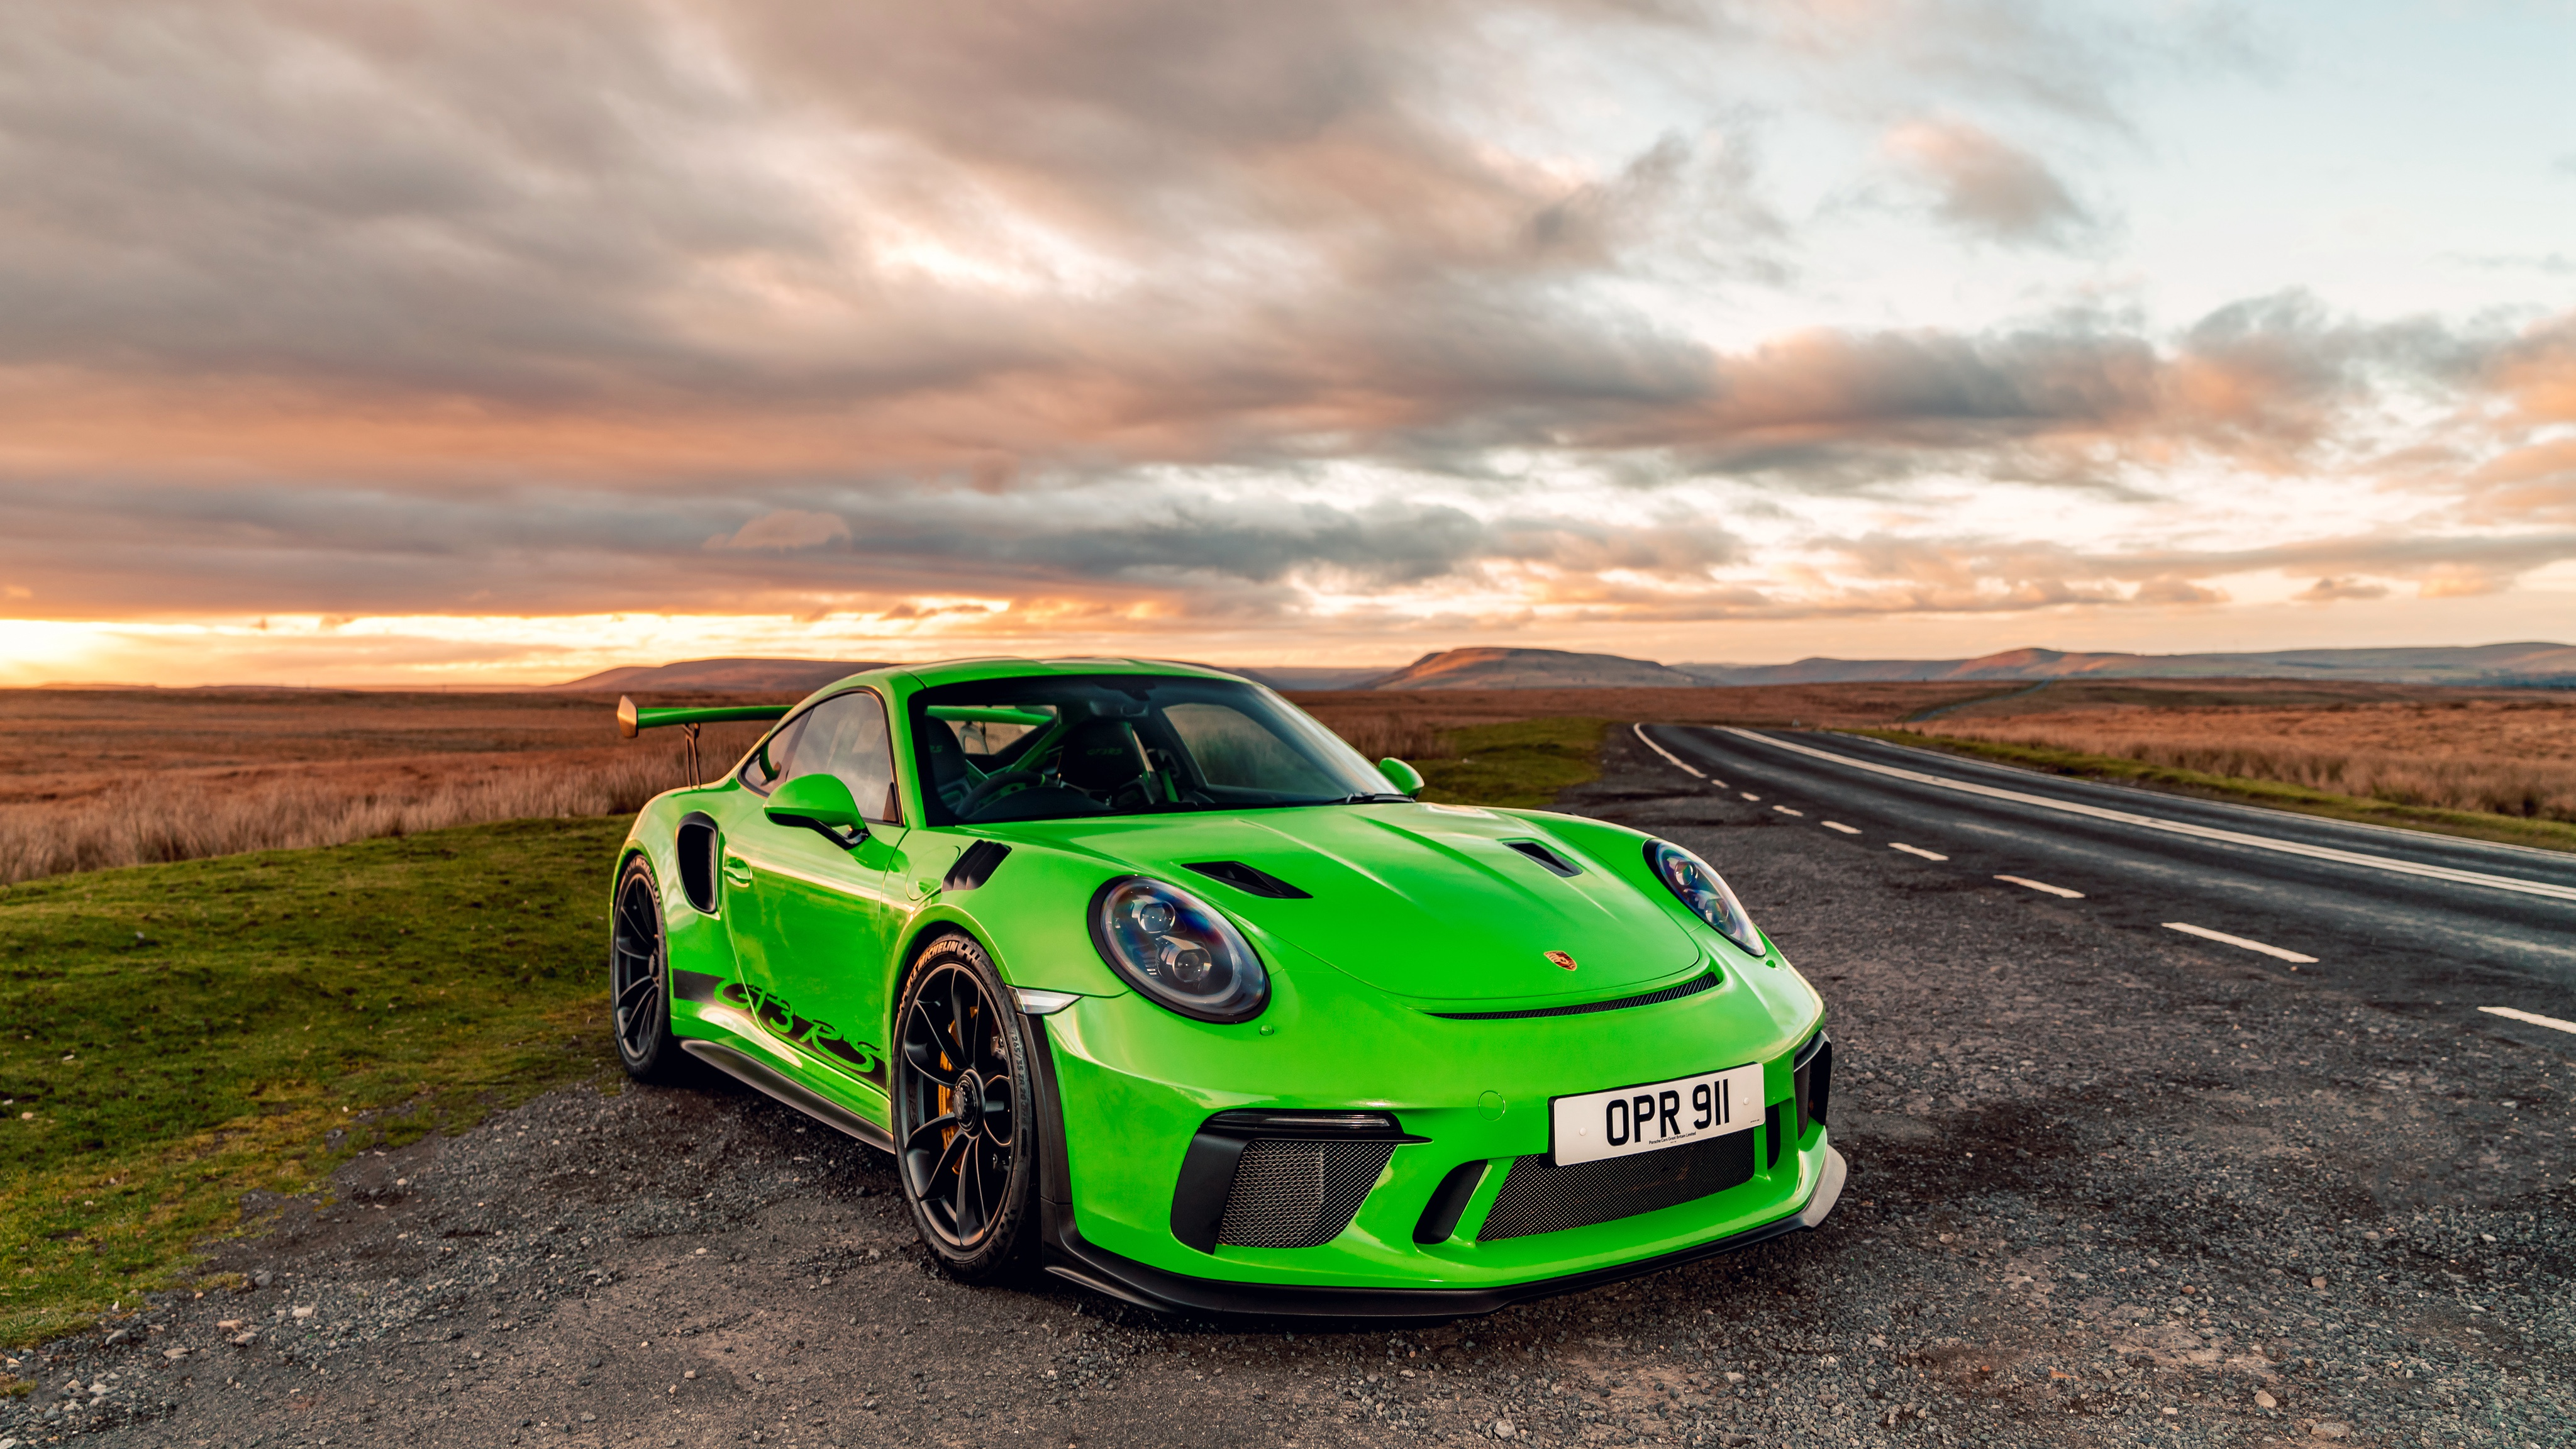 1920x1080 Porsche 911 2018 Gt3 Rs Green Laptop Full Hd 1080p Hd 4k Wallpapers Images Backgrounds Photos And Pictures